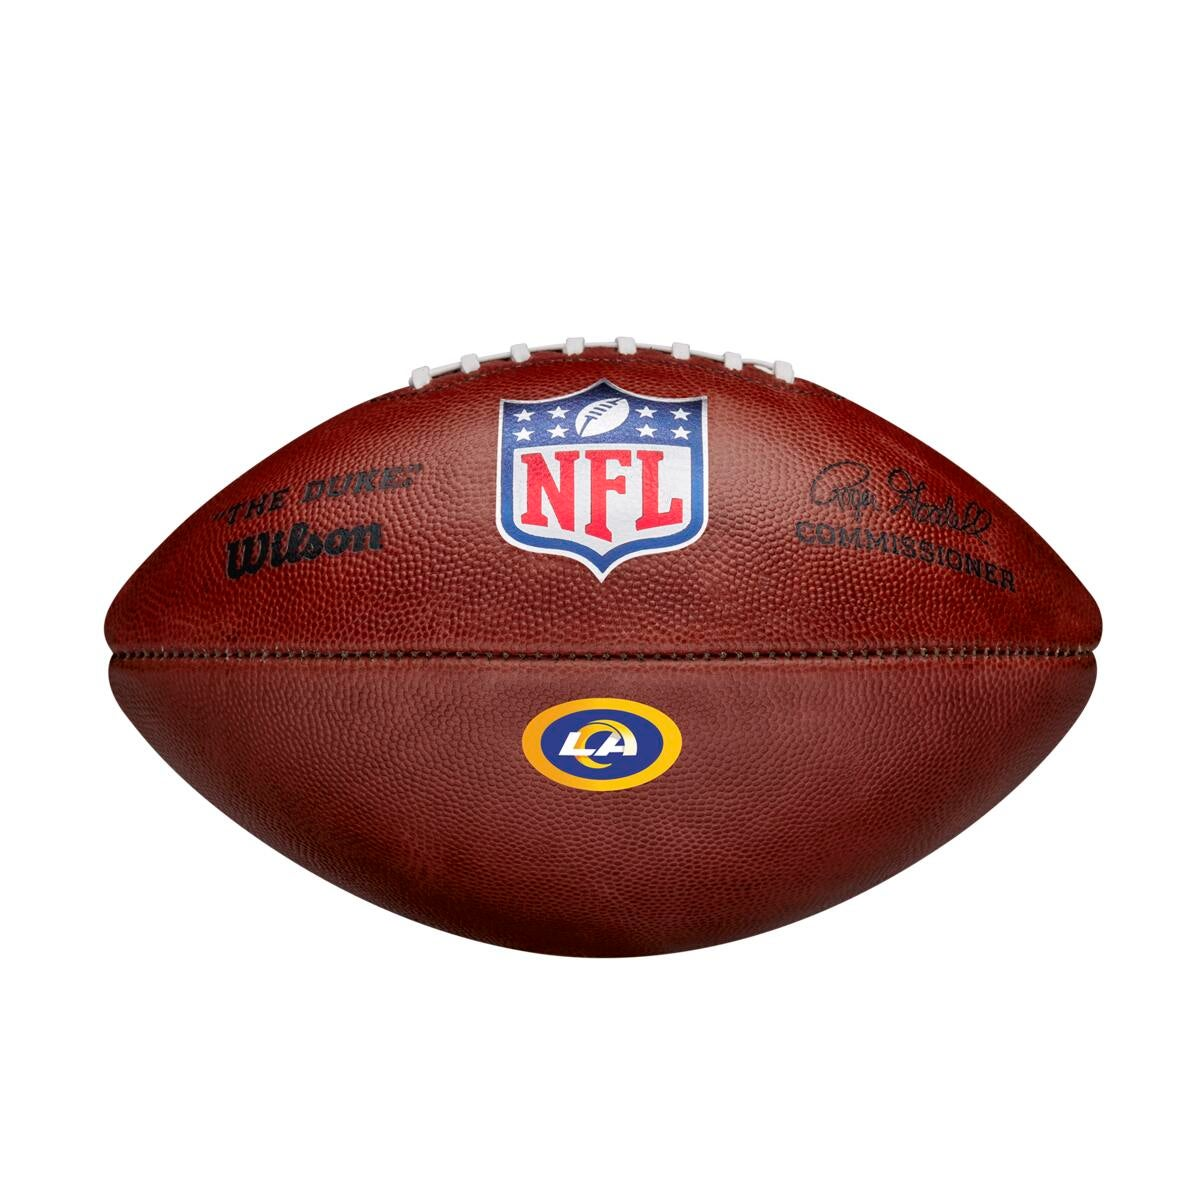 The Duke Decal NFL Football - Los Angeles Rams